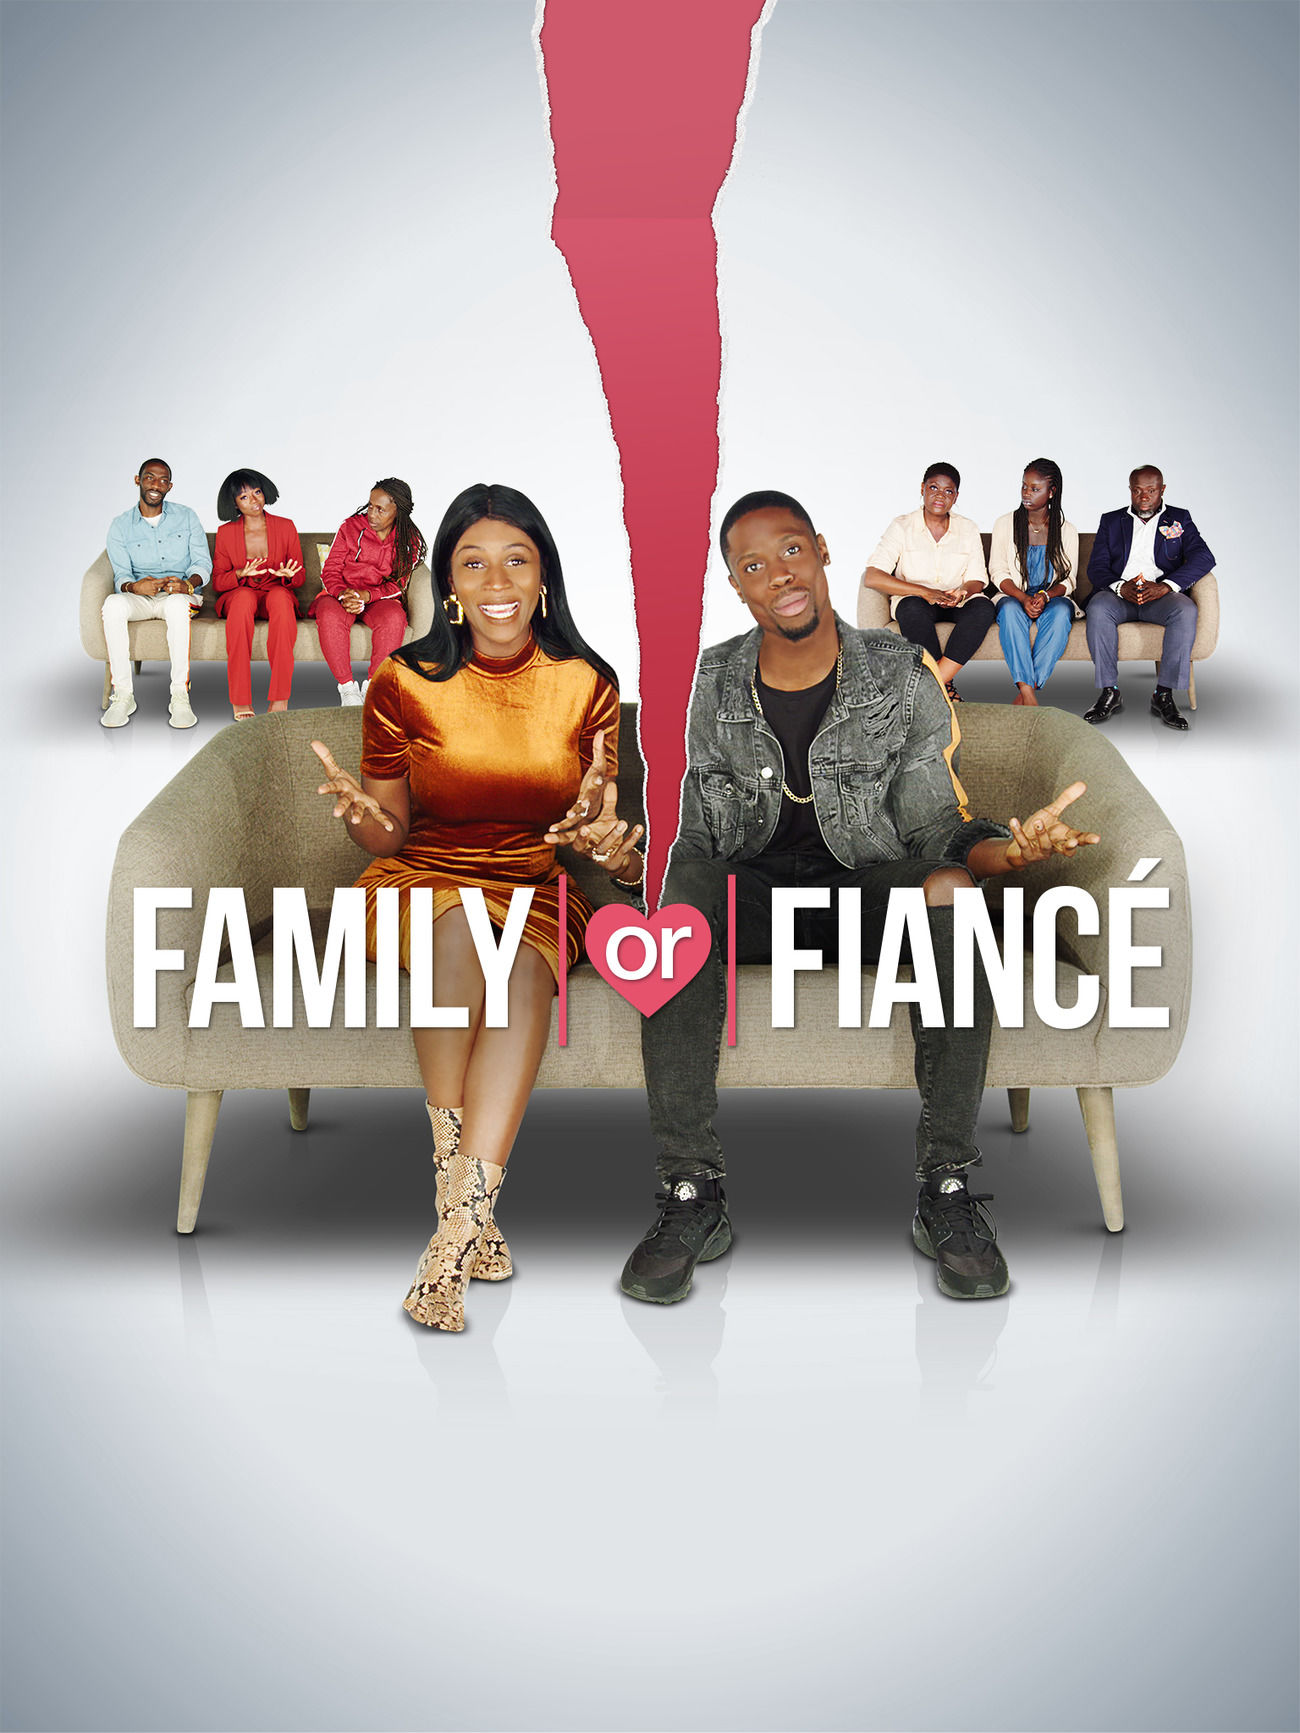 Family or Fiancé - Season 3